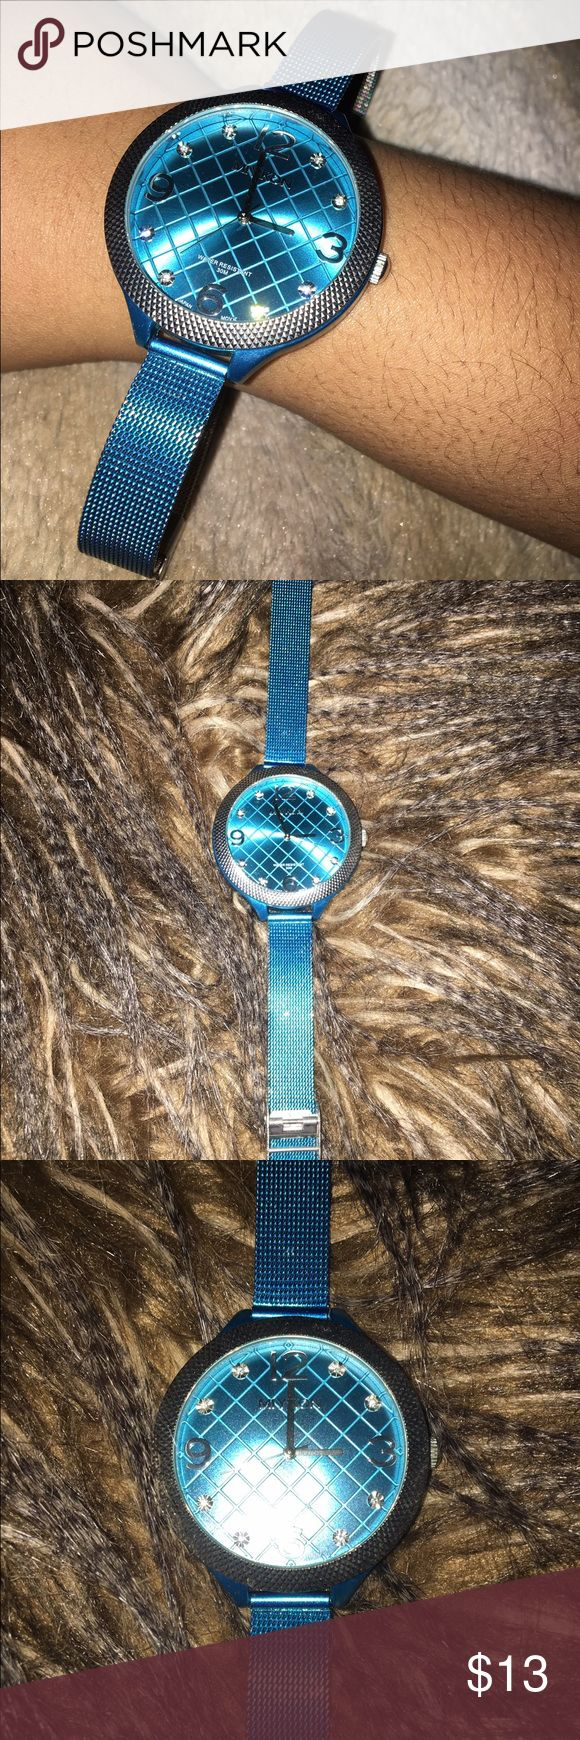 ⌚️BRAND:MIYOKON , COLOR: BLUE STAINLESS STEEL Big face watch, thin strap, Adjustable, Blue colored, water resistant, Light weight. Accessories Watches